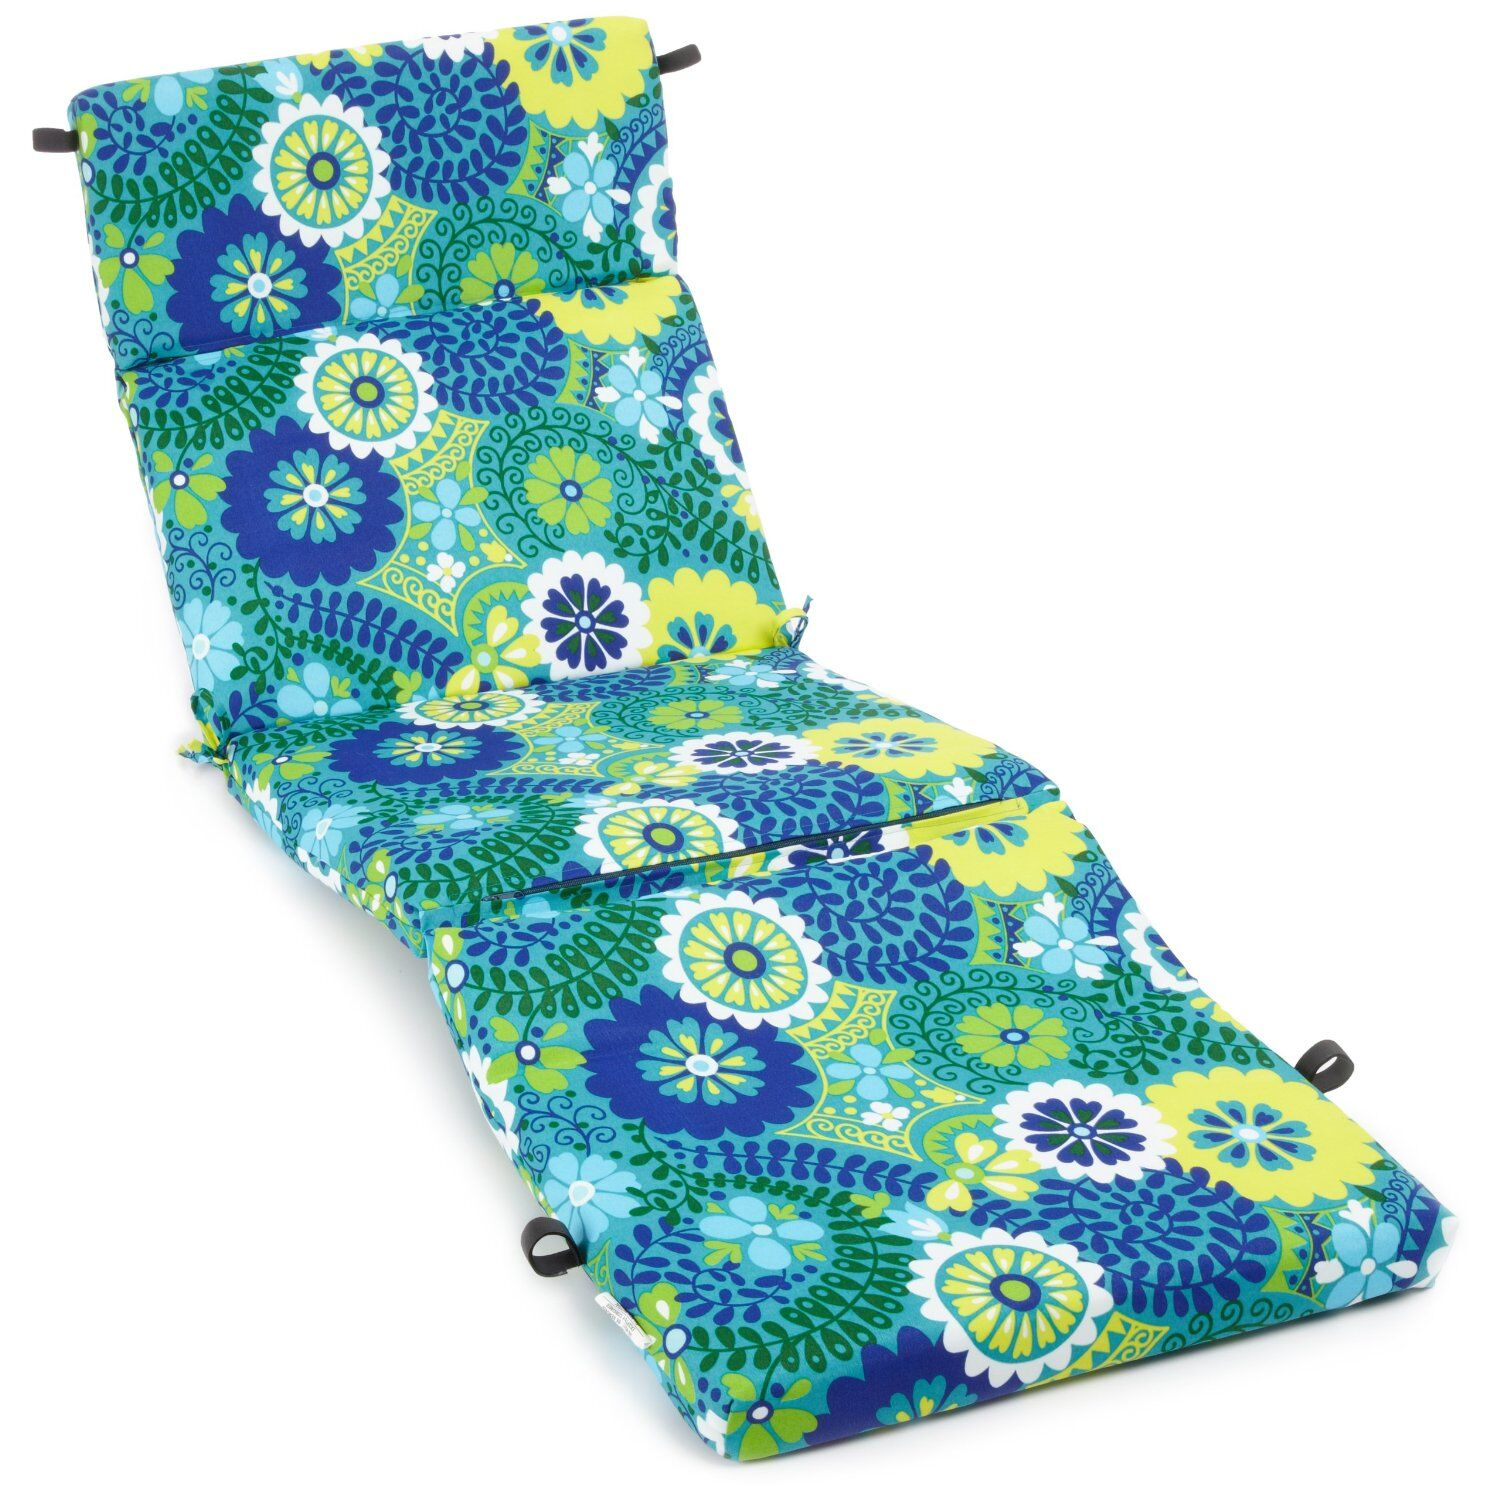 The Blazing Needles All-Weather UV-Resistant Patio Chaise Lounge Cushion is an excellent combination of comfort and convenience. This cushion is made from high-quality materials, and this makes it water- and weather- resistant. It is available in a va...